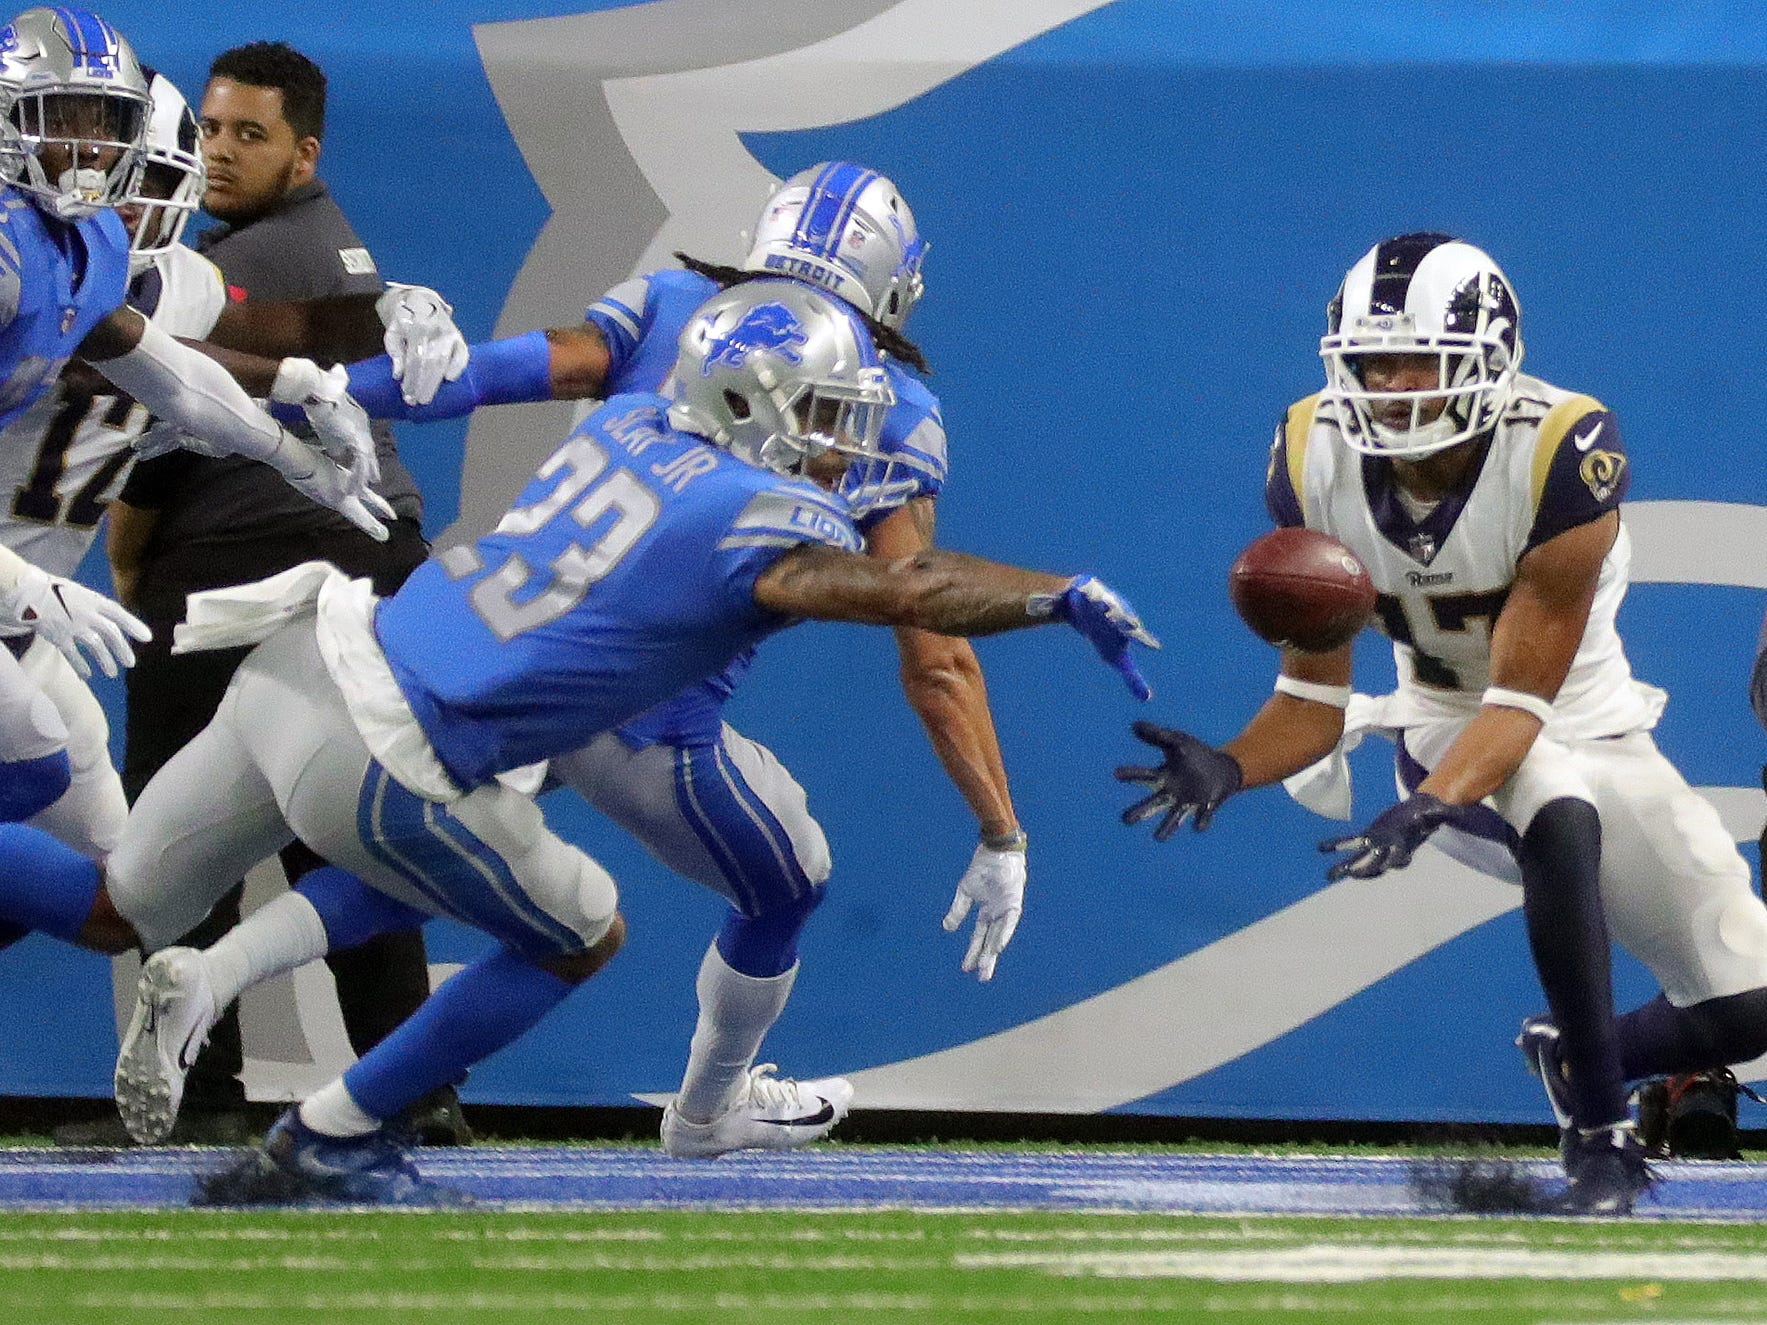 Detroit Lions cornerback Darius Slay gives up the touchdown catch to Los Angeles Rams receiver Robert Woods during the first half Sunday, Dec. 2, 2018 at Ford Field in Detroit.